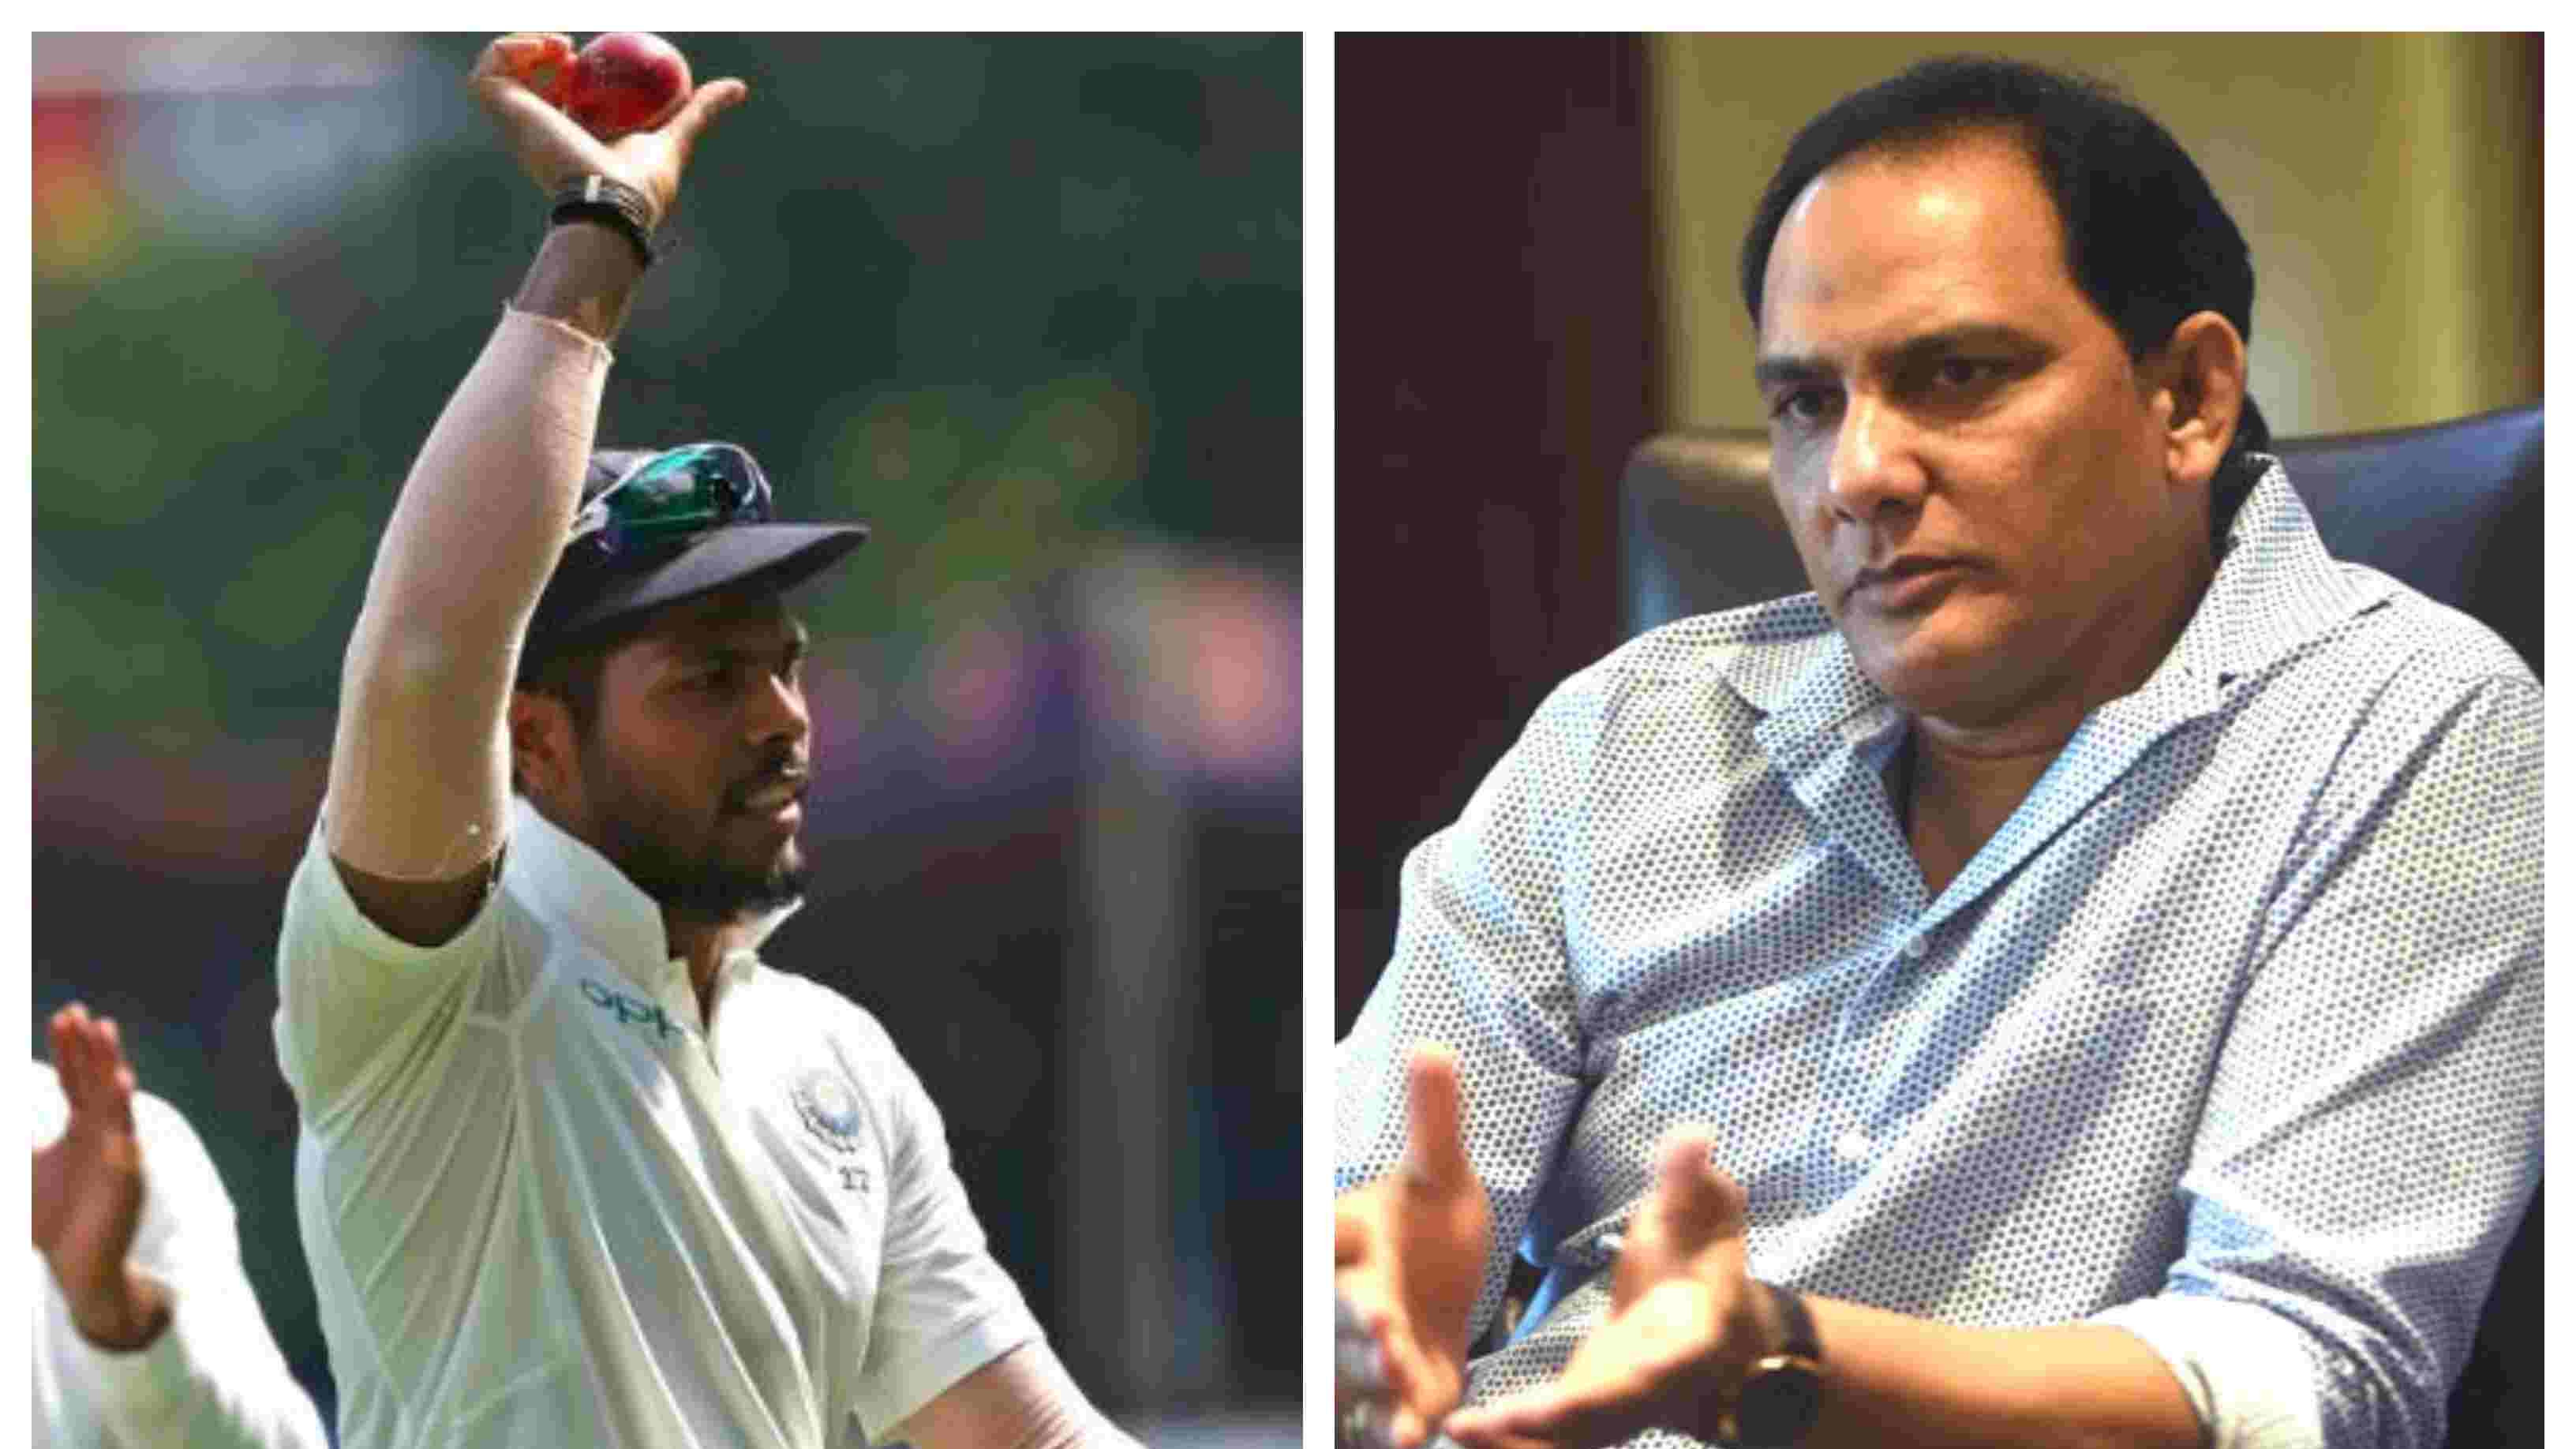 Mohammad Azharuddin baffled by Indian players' complaining over SG ball